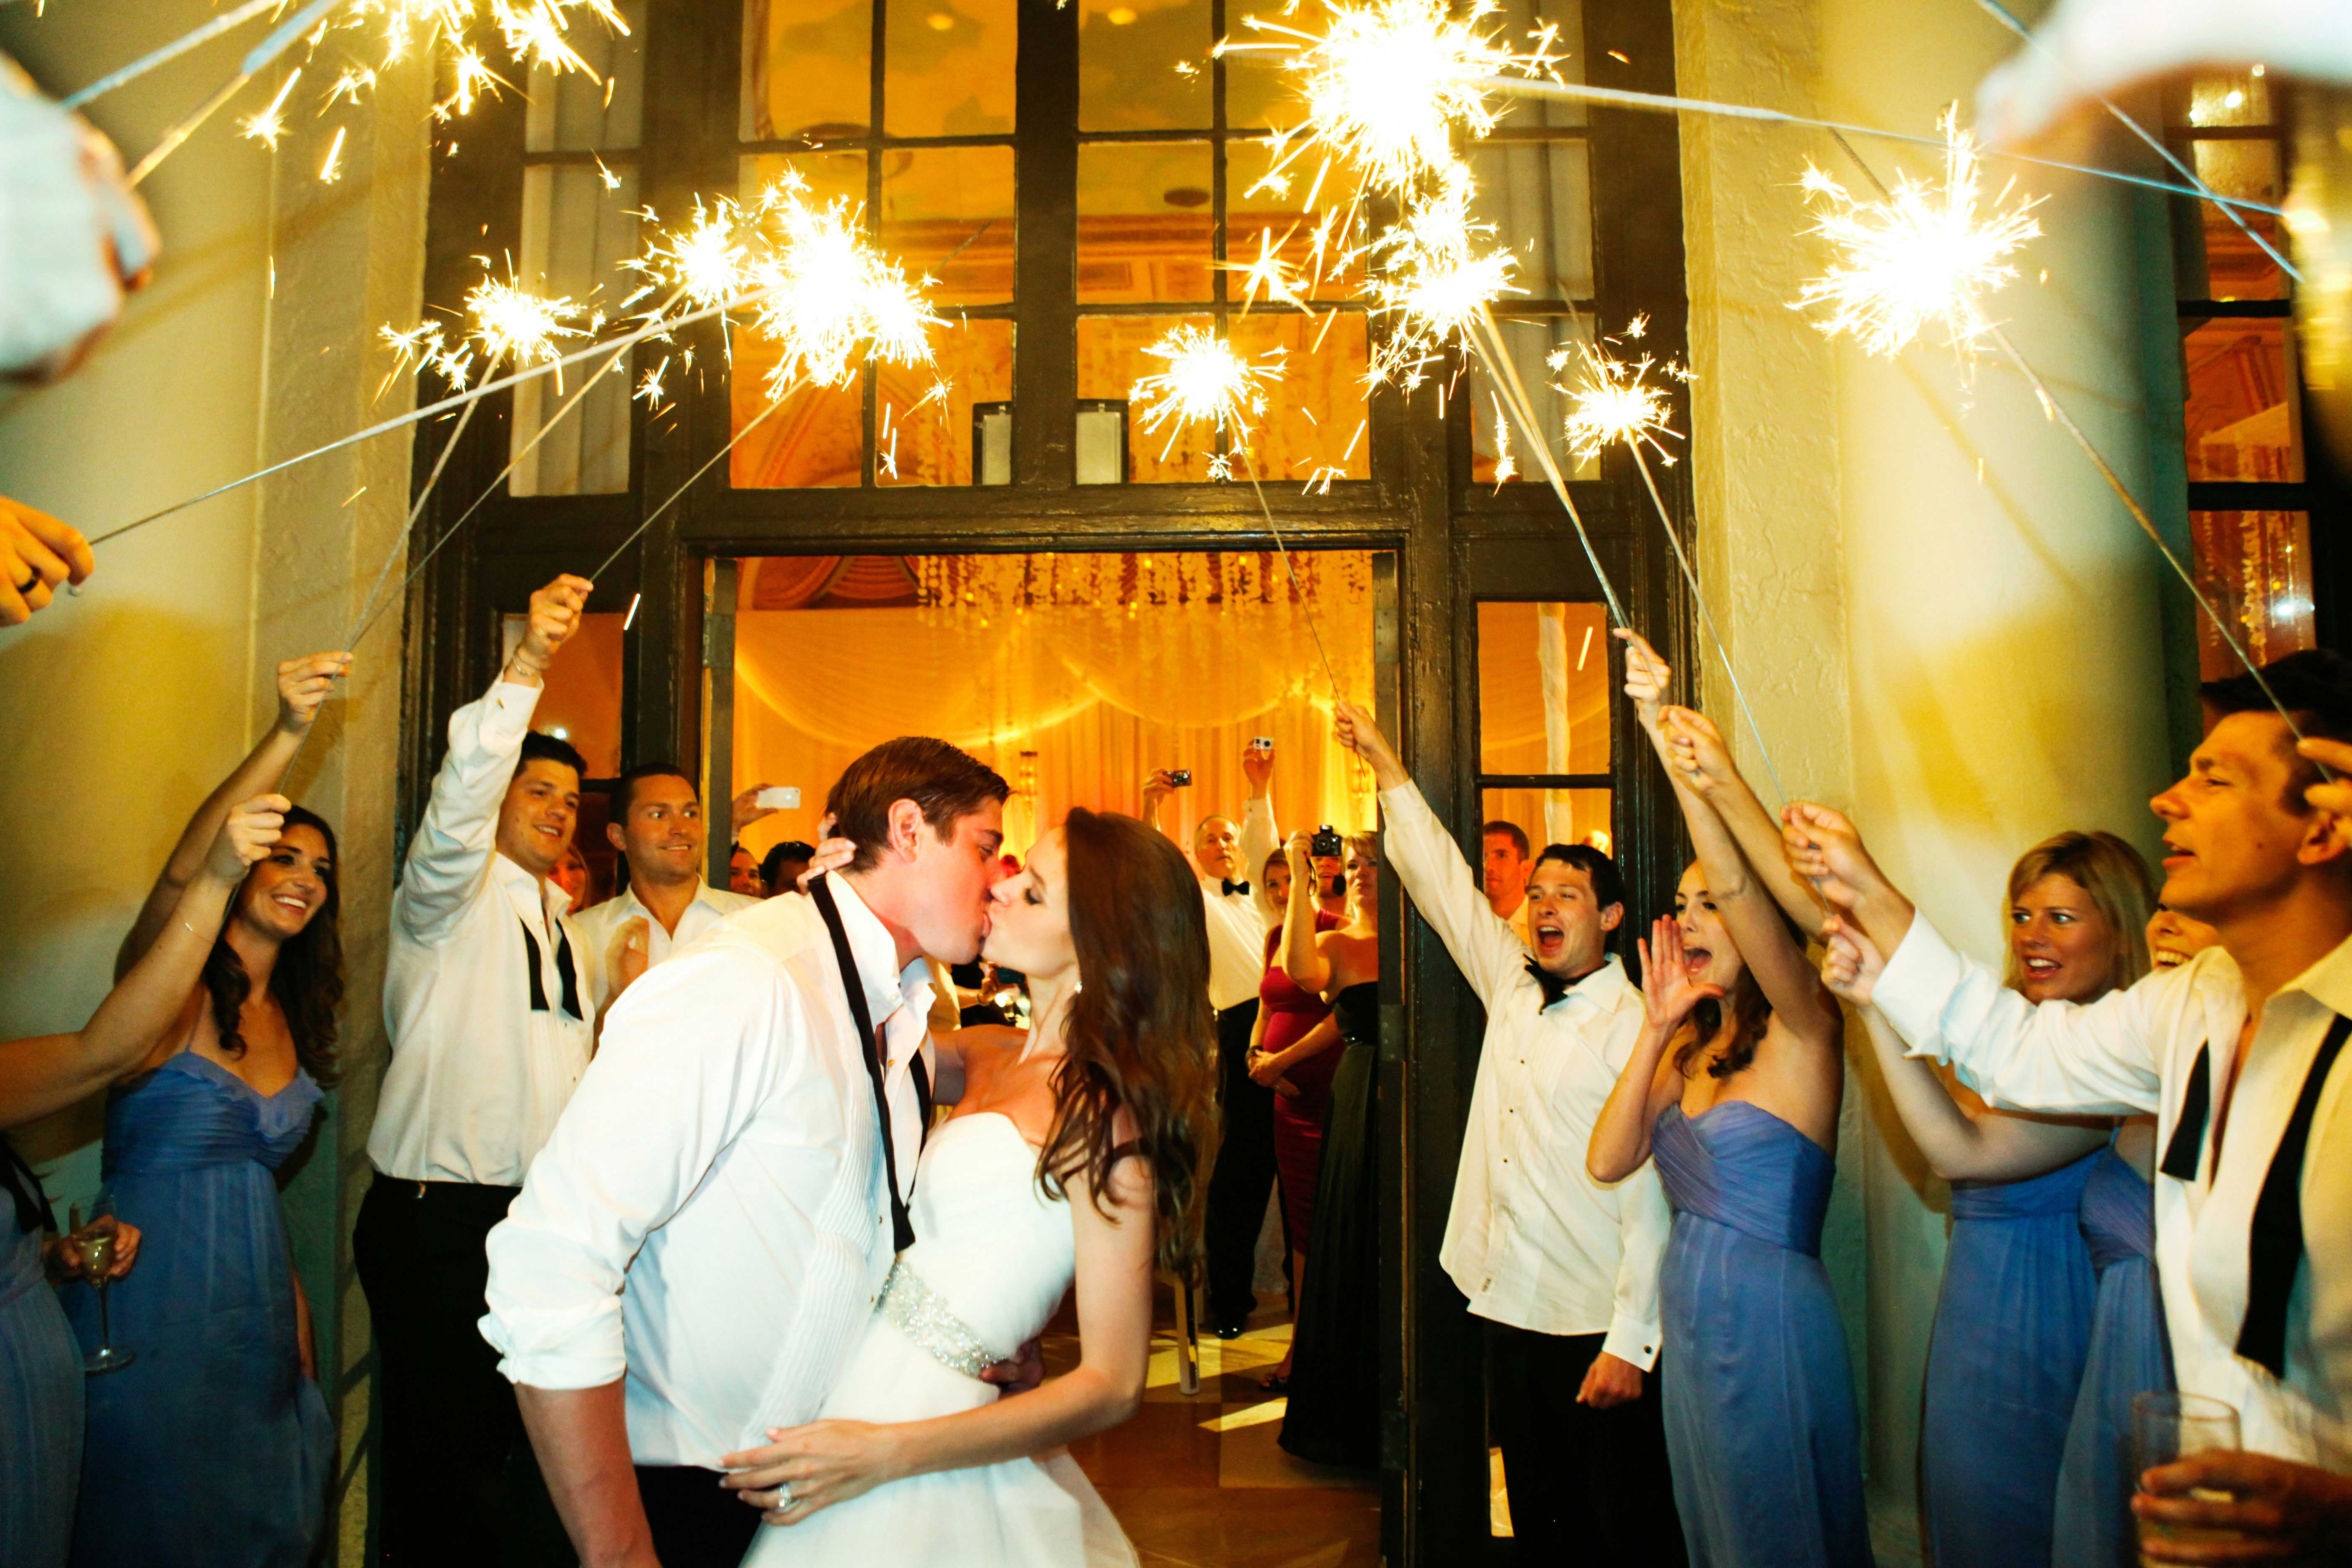 Bride and groom kiss at wedding reception sparklers guests taking photos